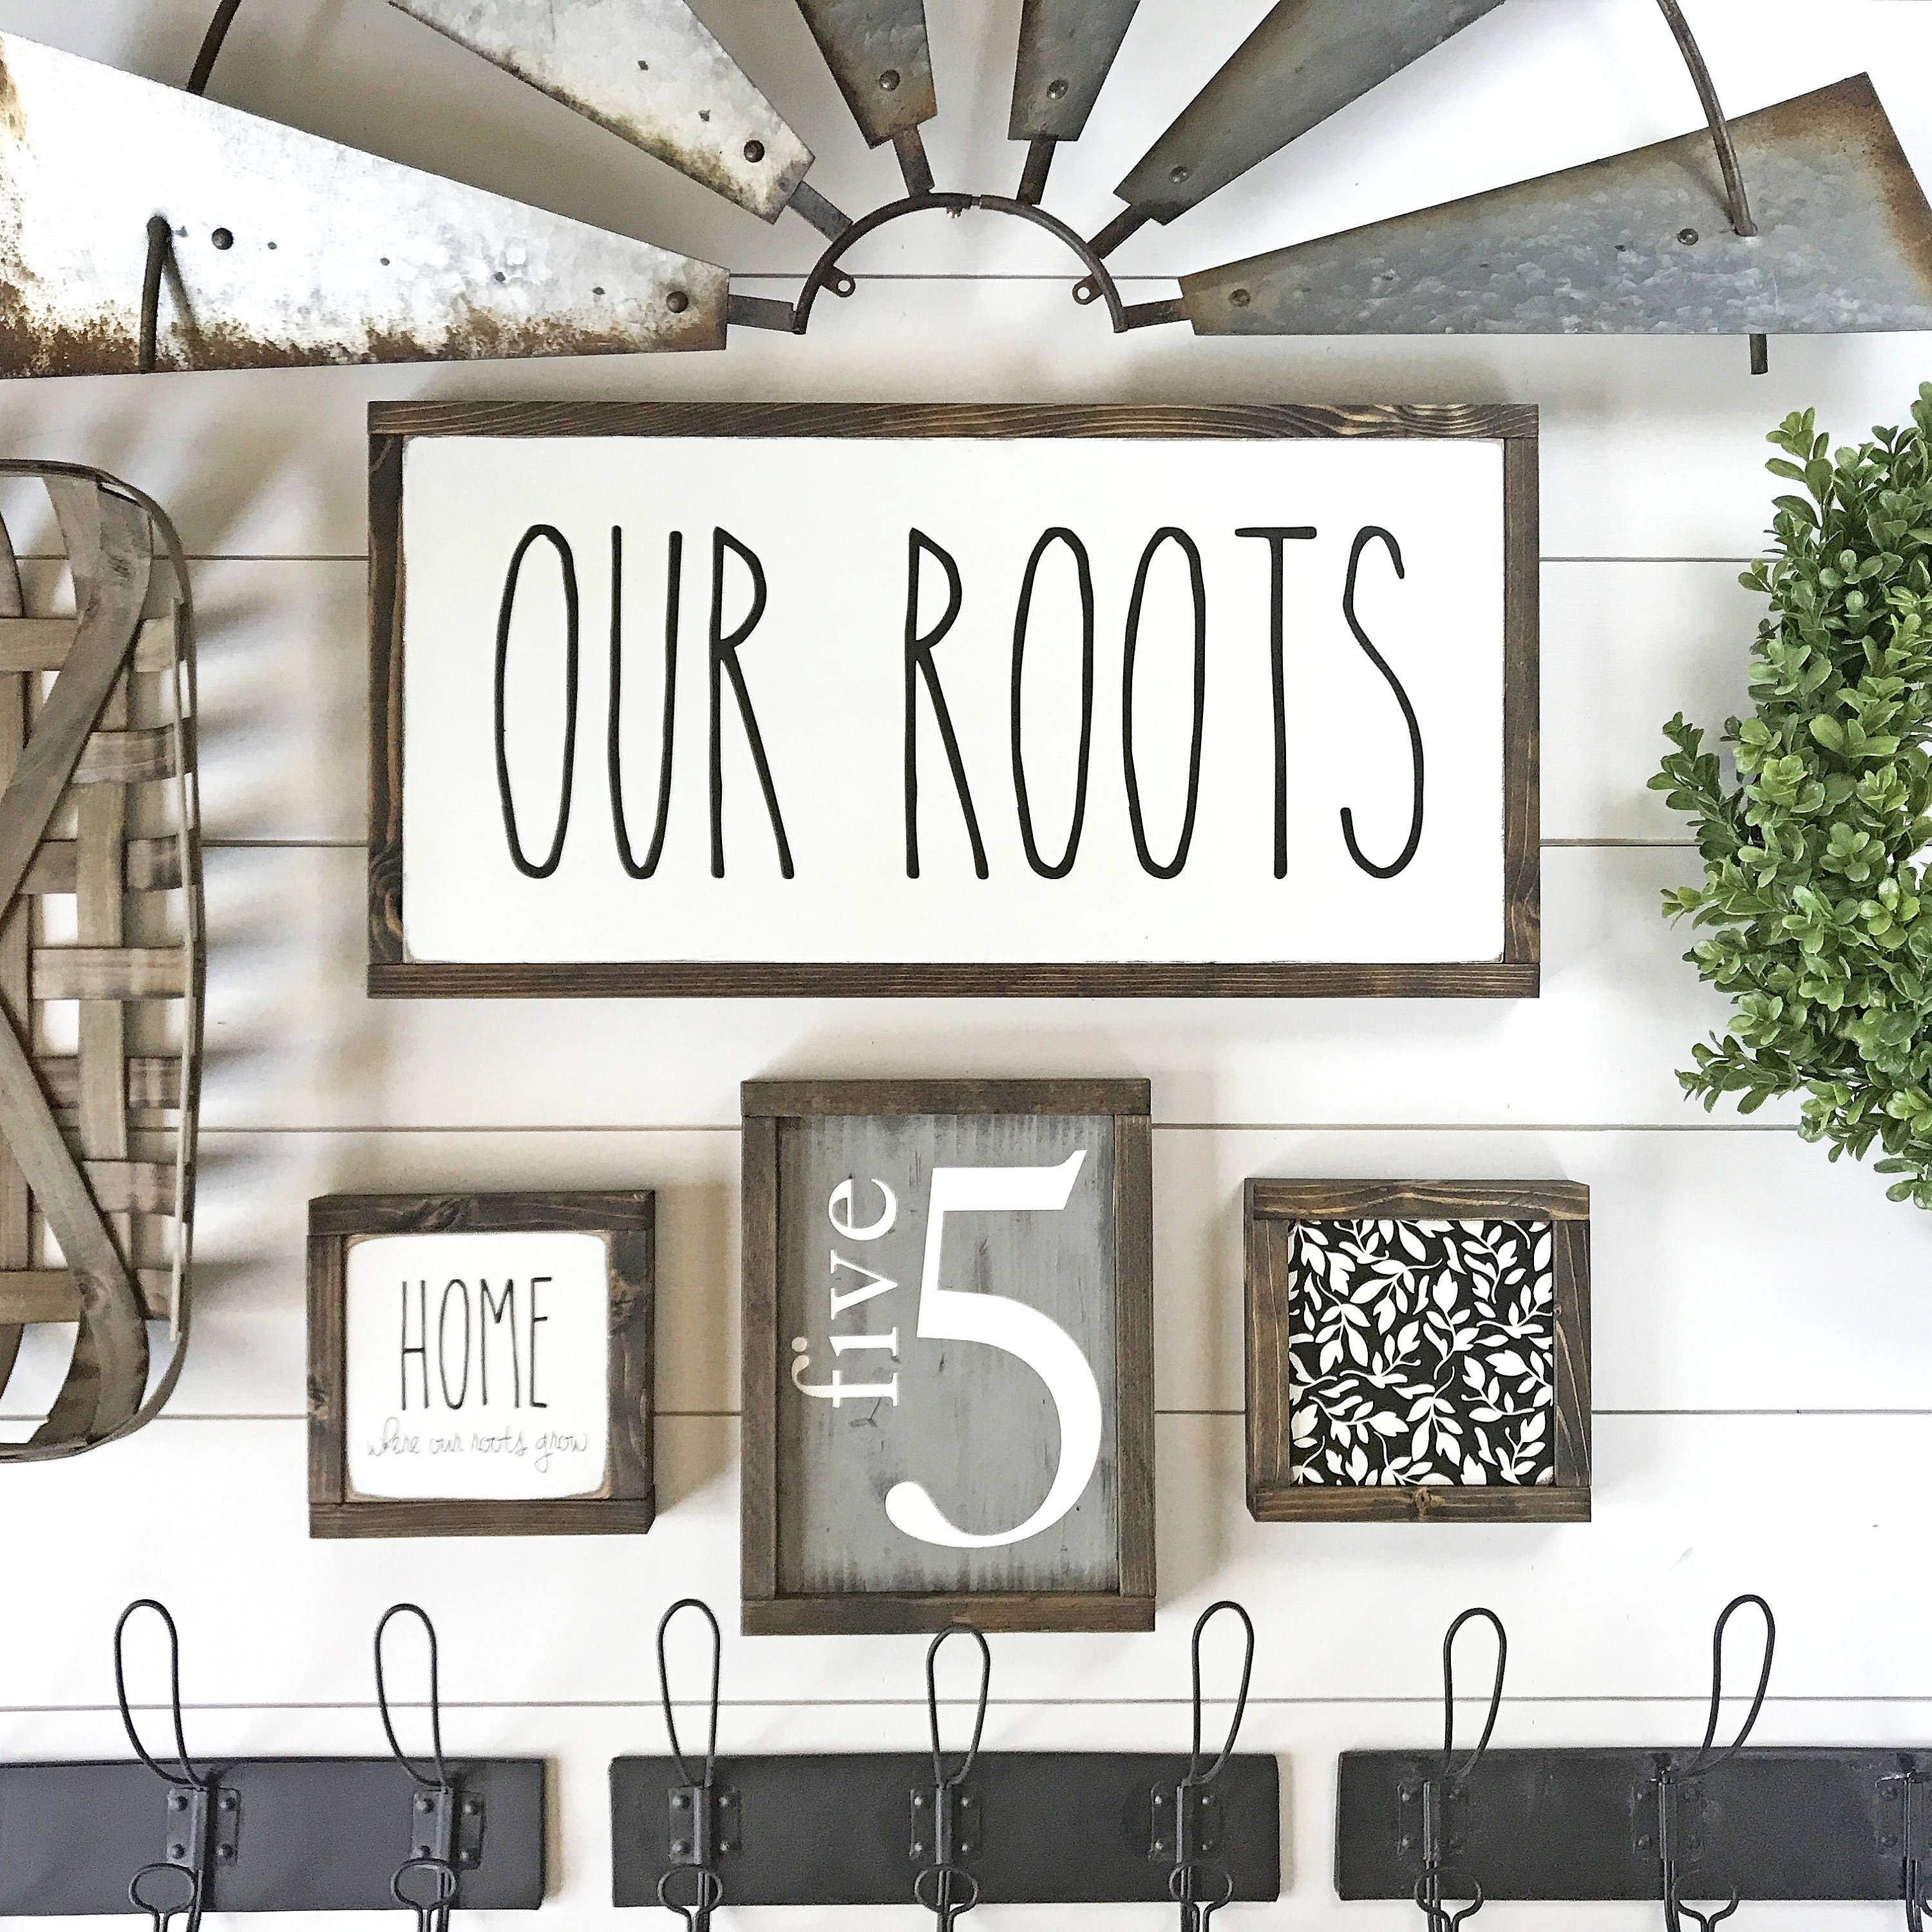 Home Where Our Roots Grow- Home Sweet Home Wood Sign